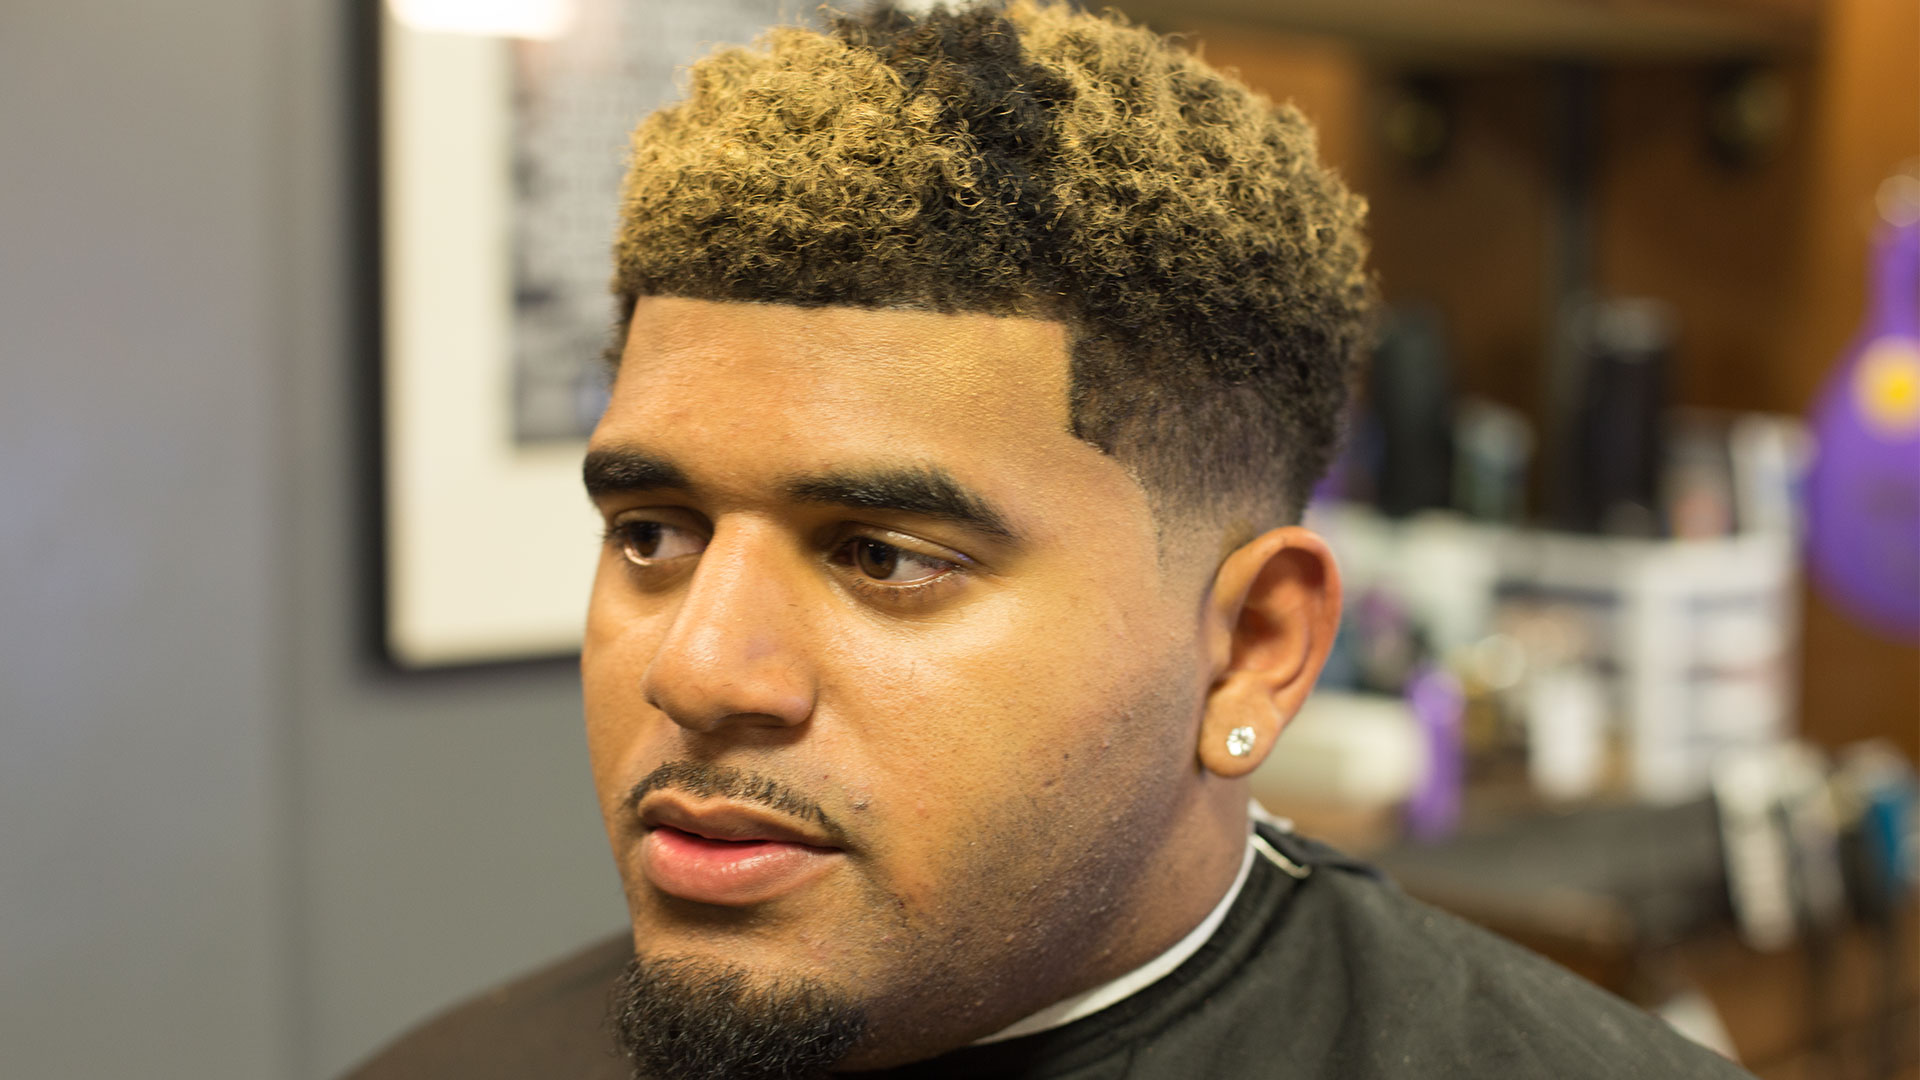 NuDred Low Fade W Blond Coloring Dave Diggs Online